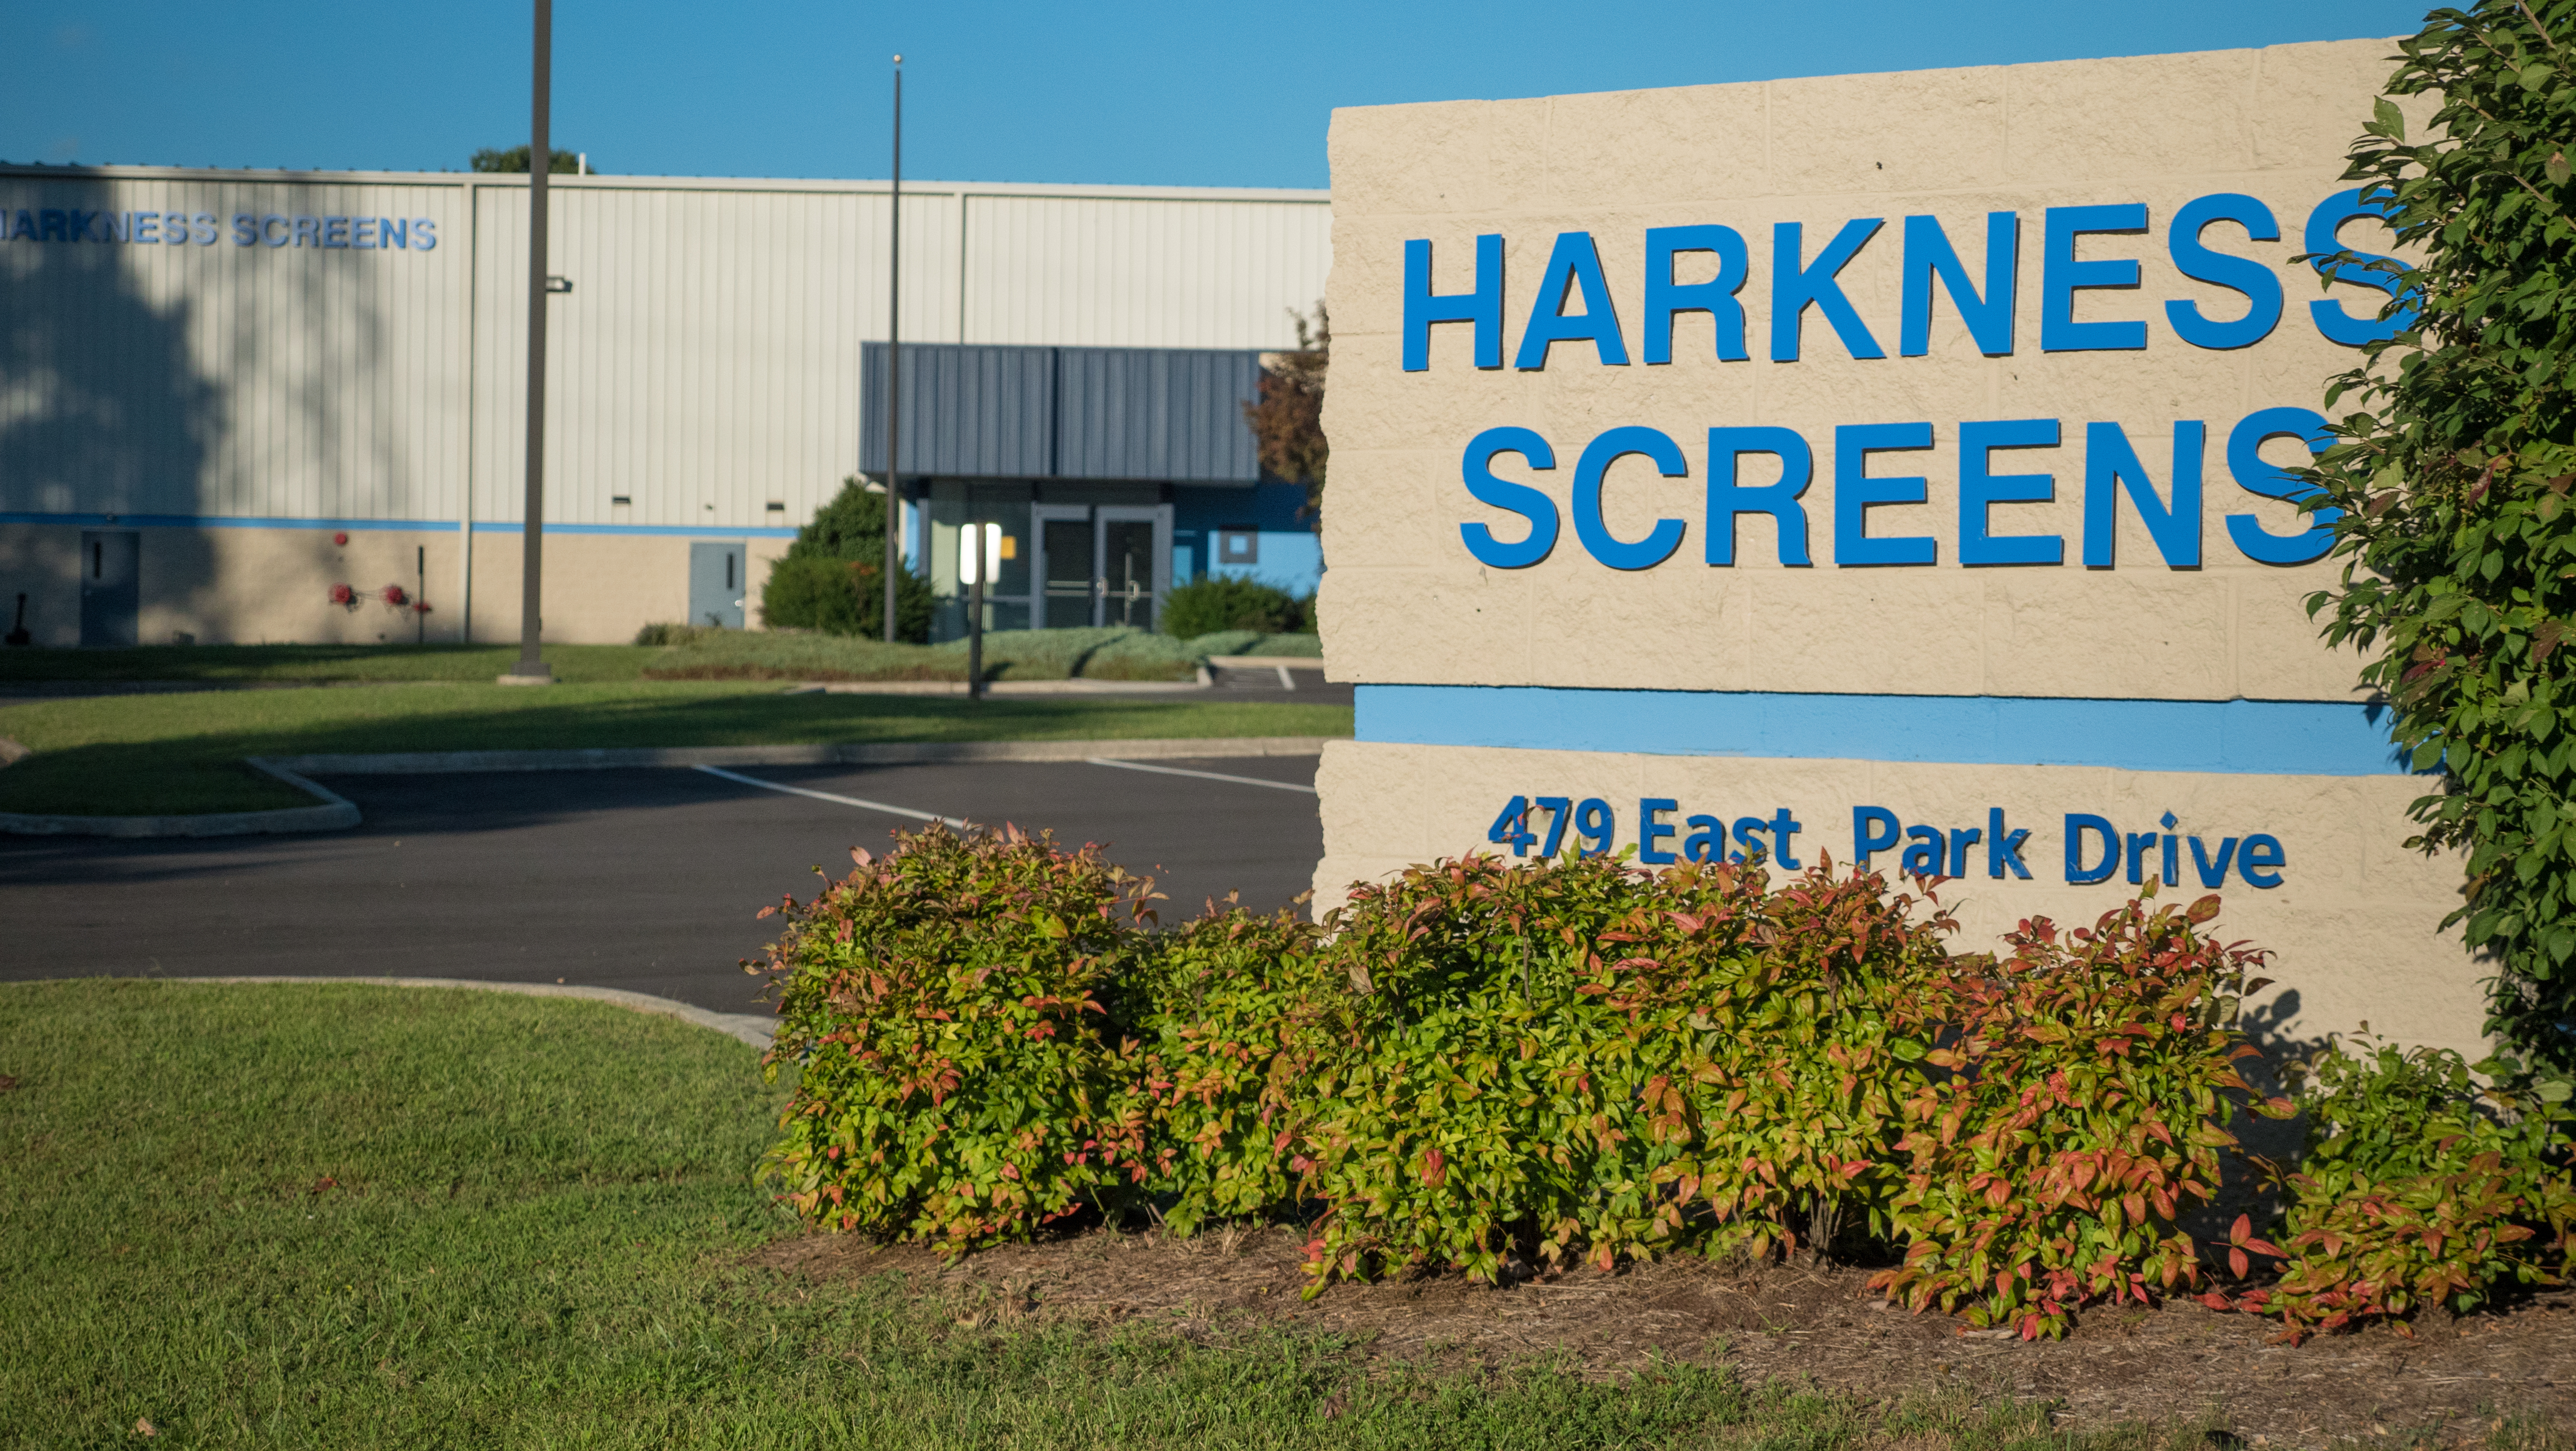 Harkness Screens USA is in Start-Up Mode